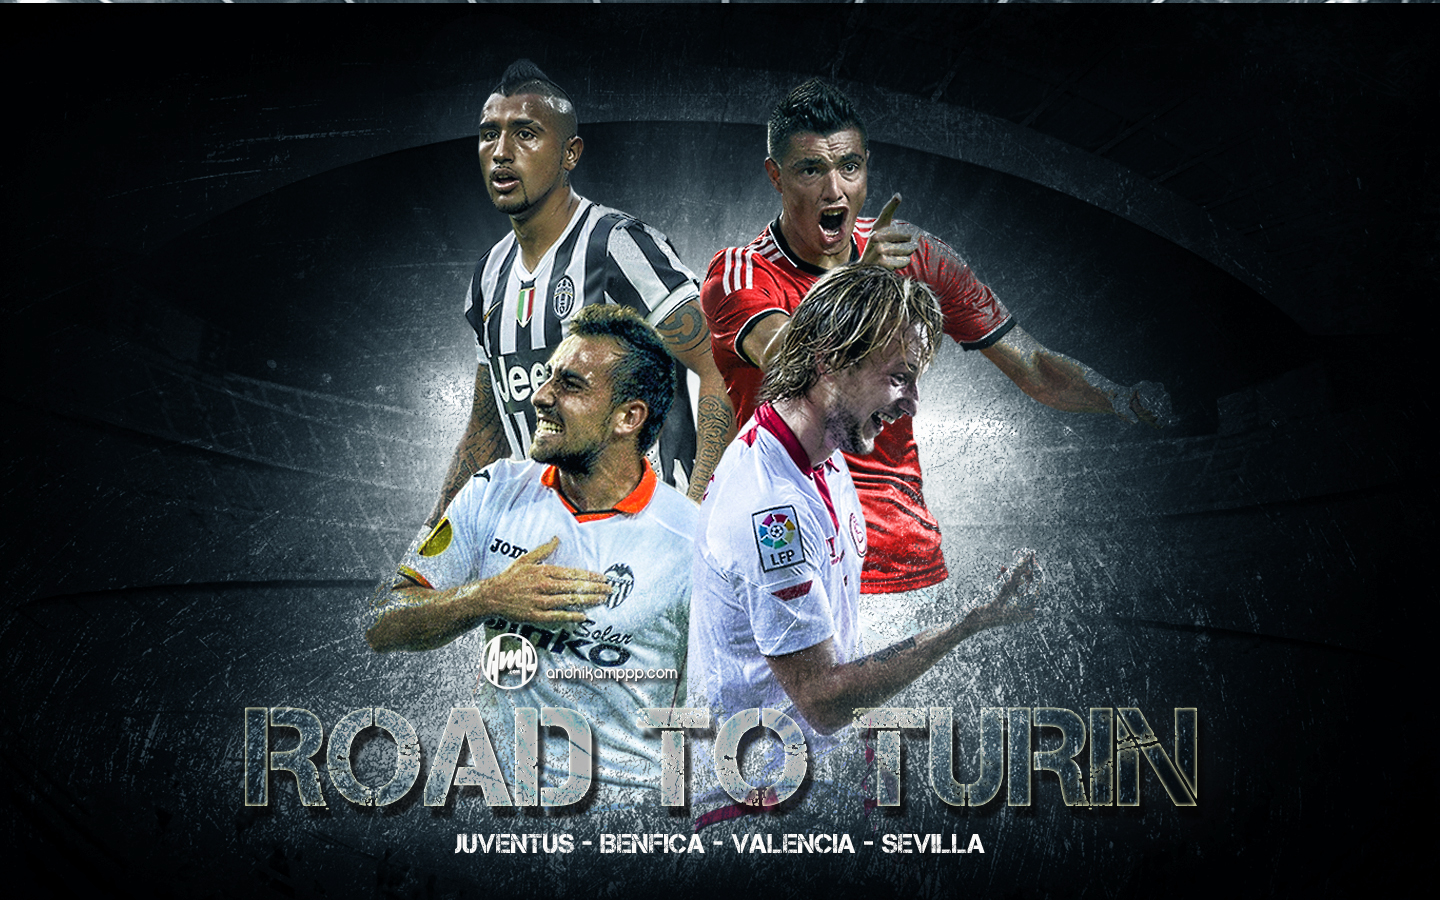 Road To Turin